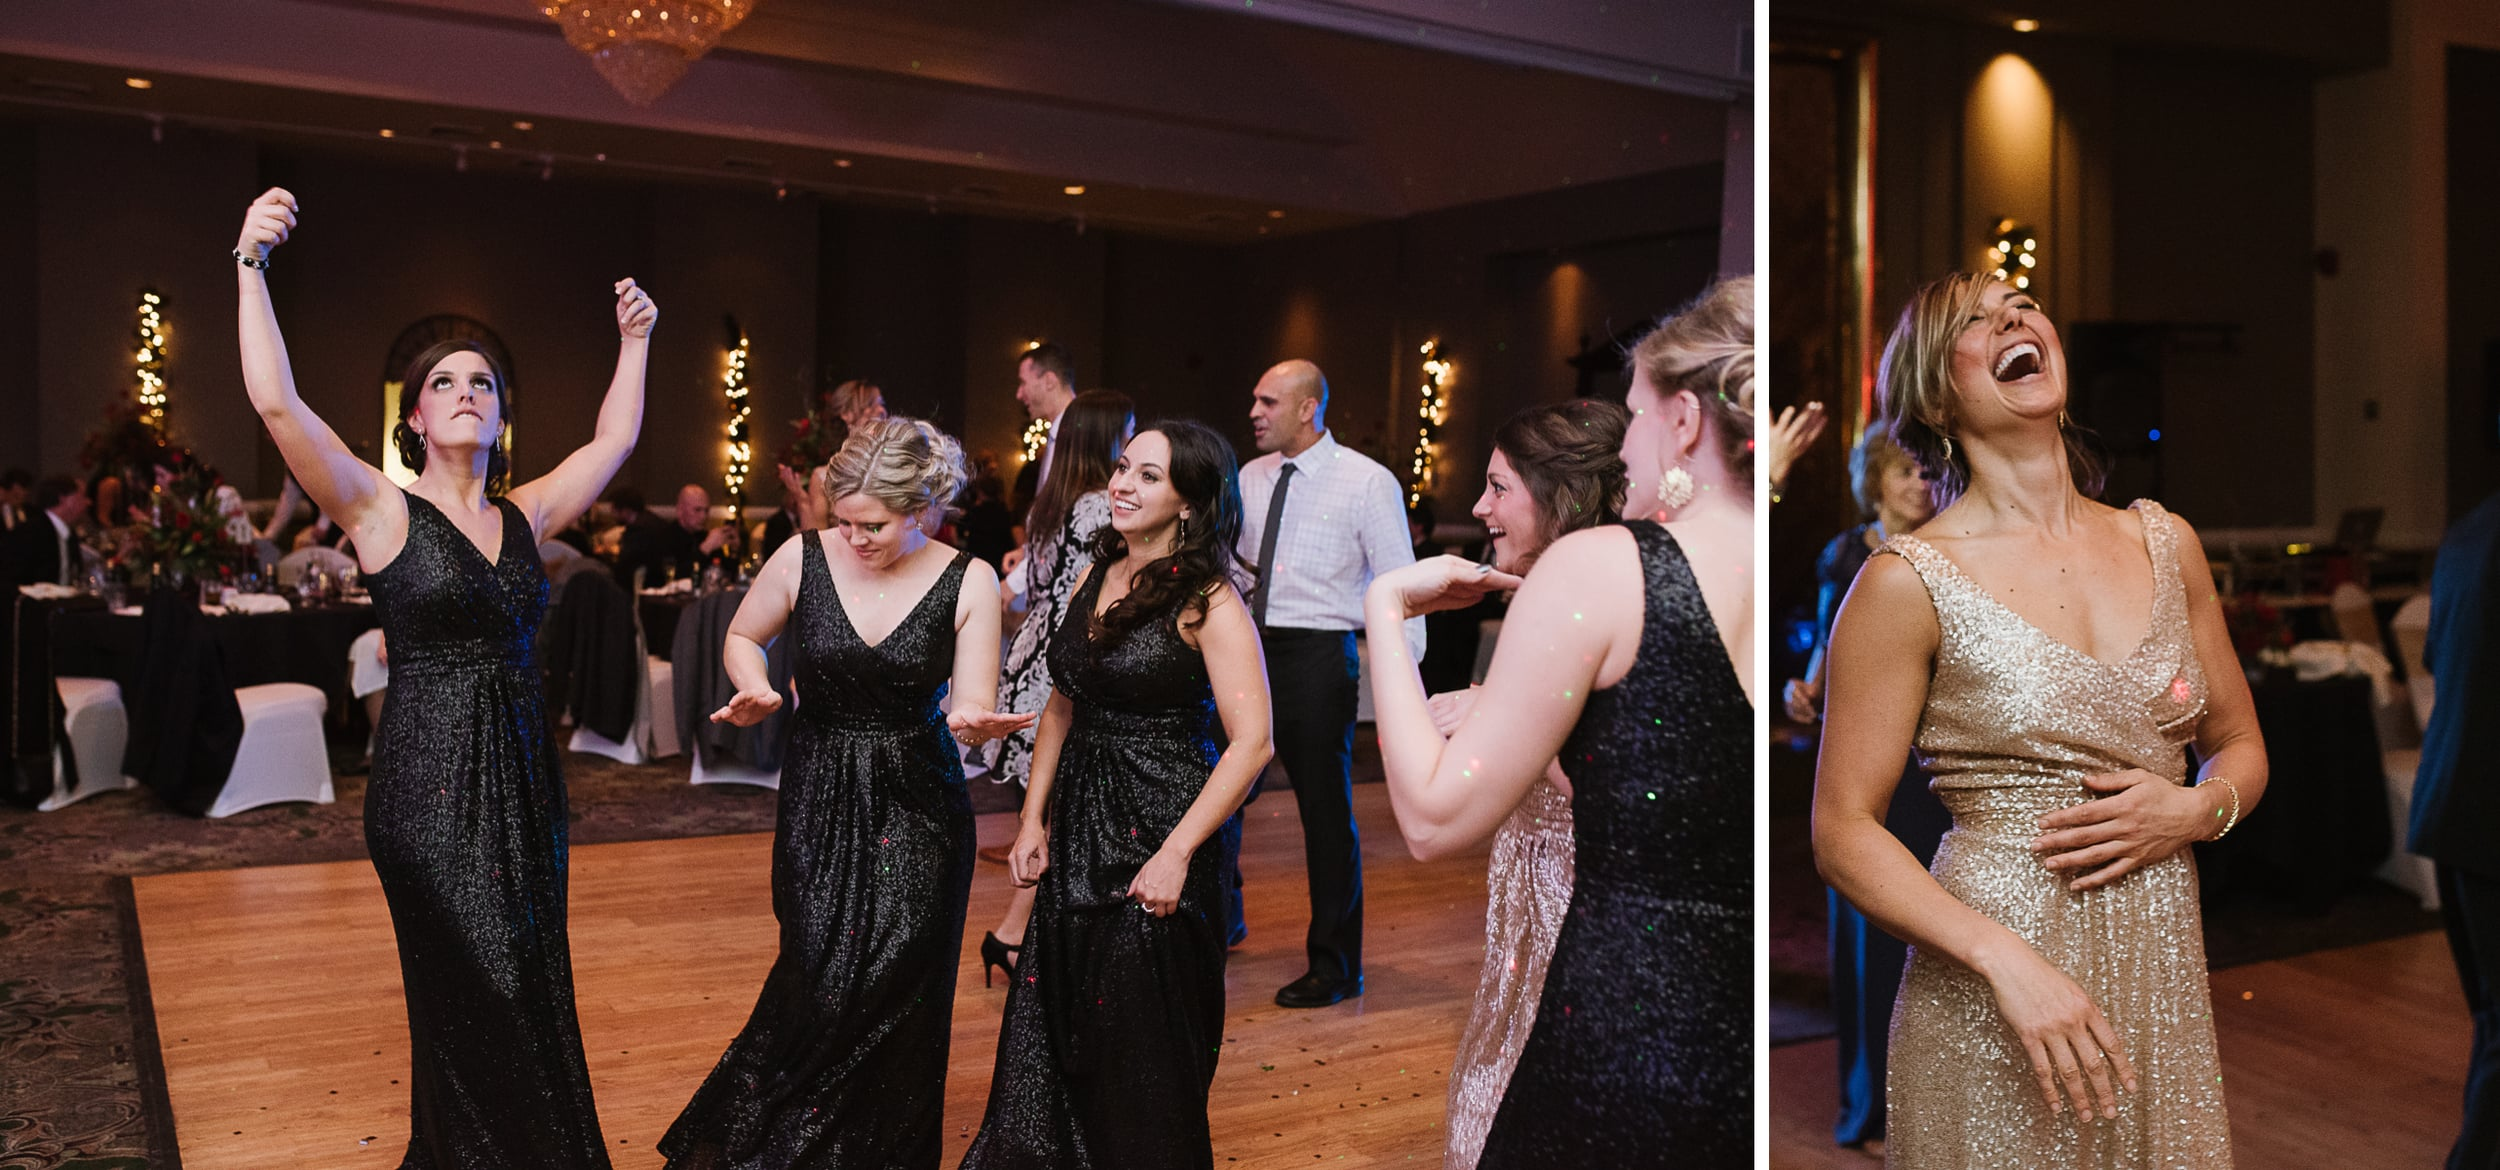 Chestnut Ridge Country Club New Years Eve wedding reception, M. Fisher.jpg